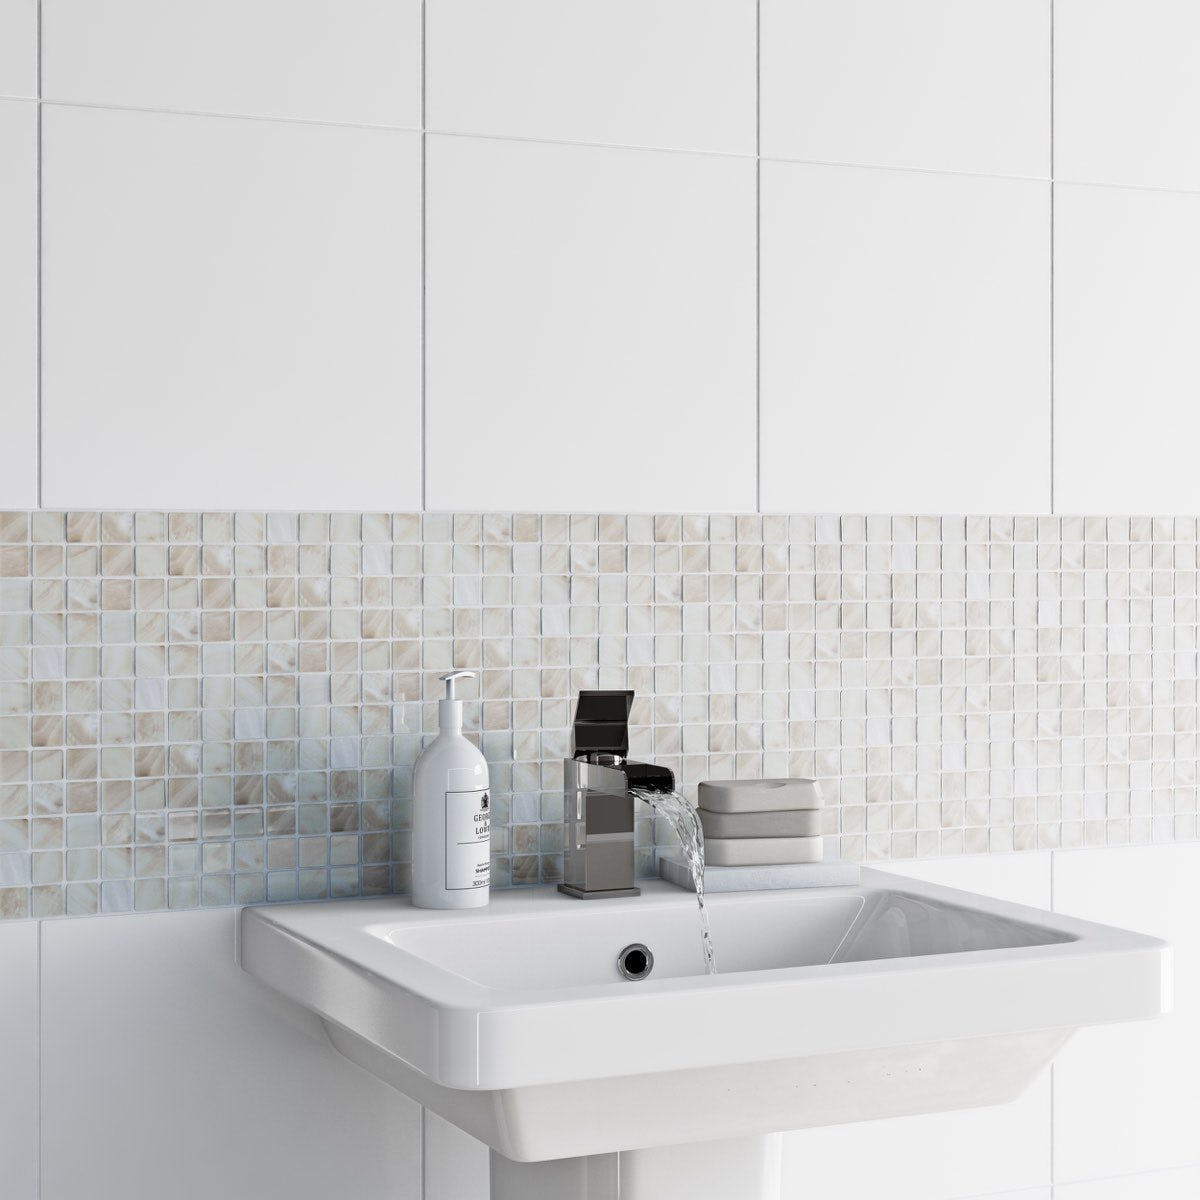 sheet tiles bathroom - Mersn.proforum.co